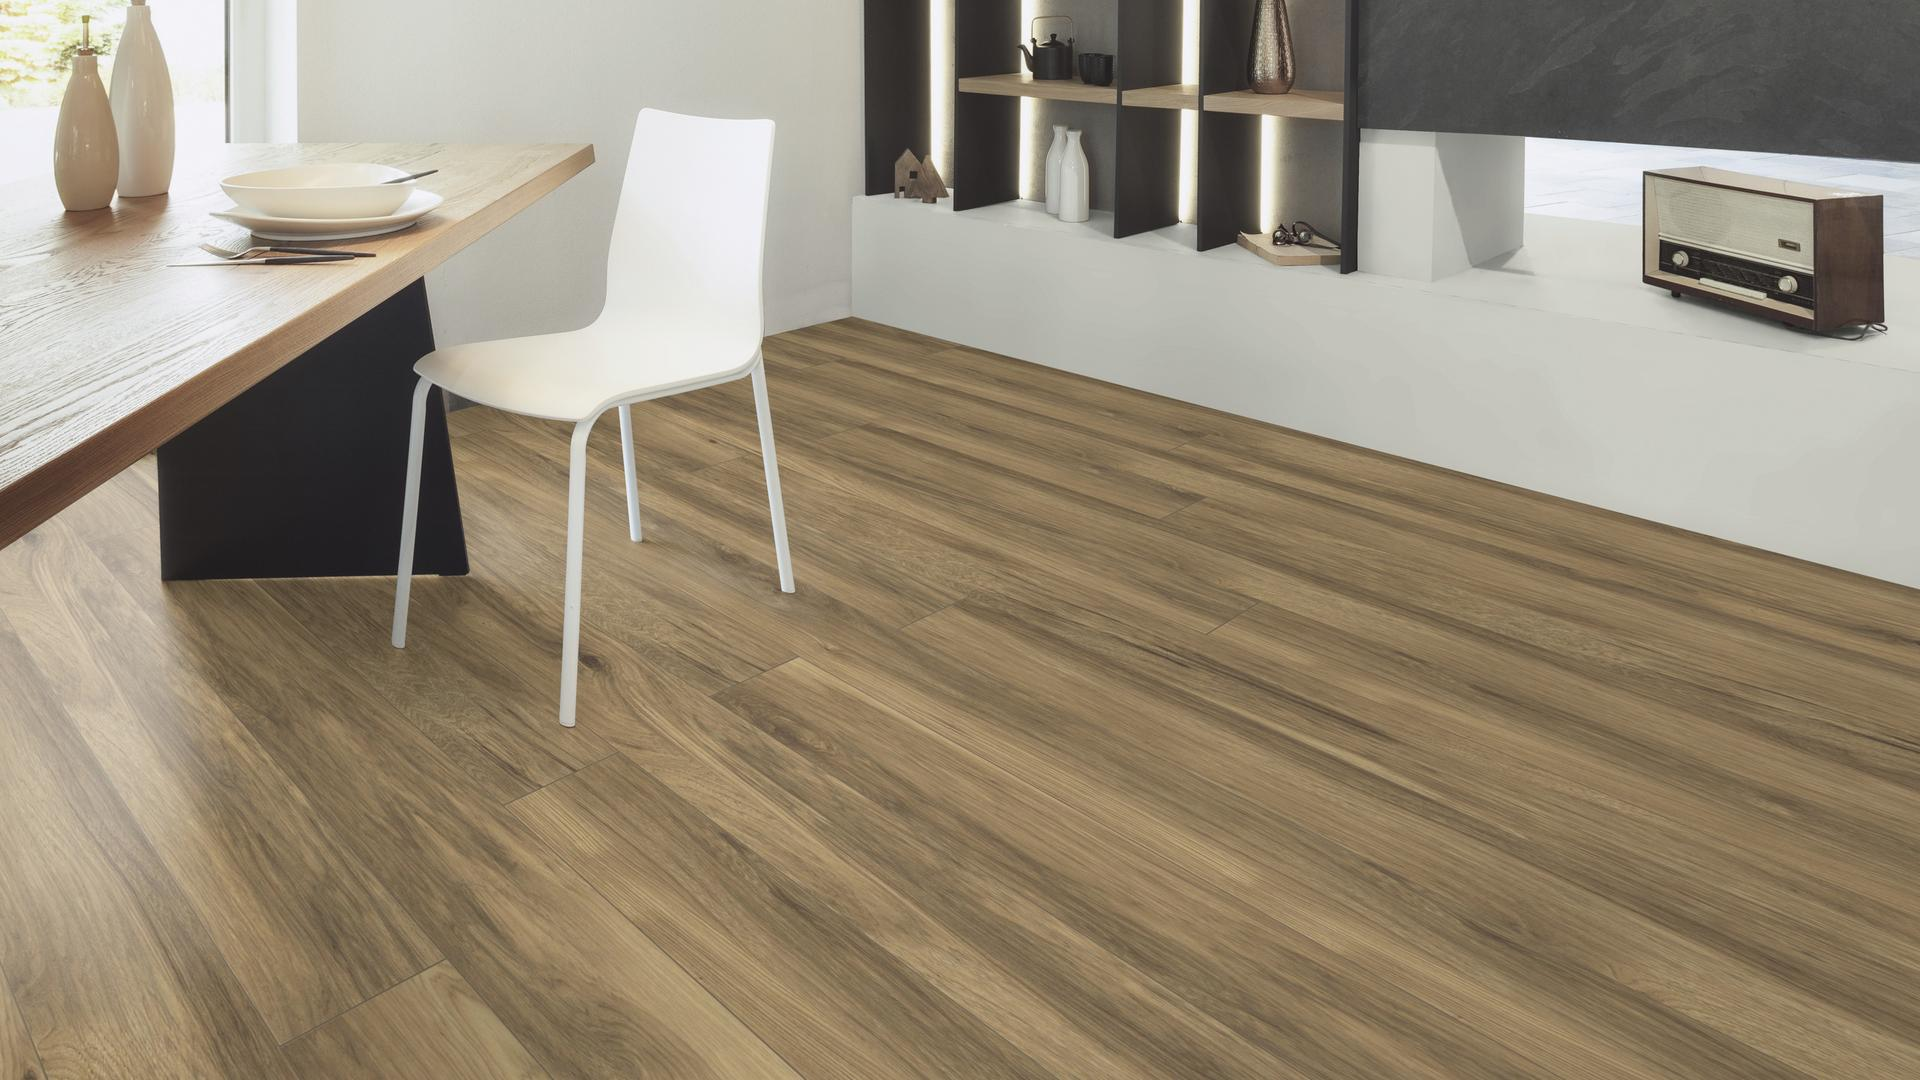 Esszimmer Hintergasse 38 38155 Hickory Melford Lh Long Hickory Floor Kaindl